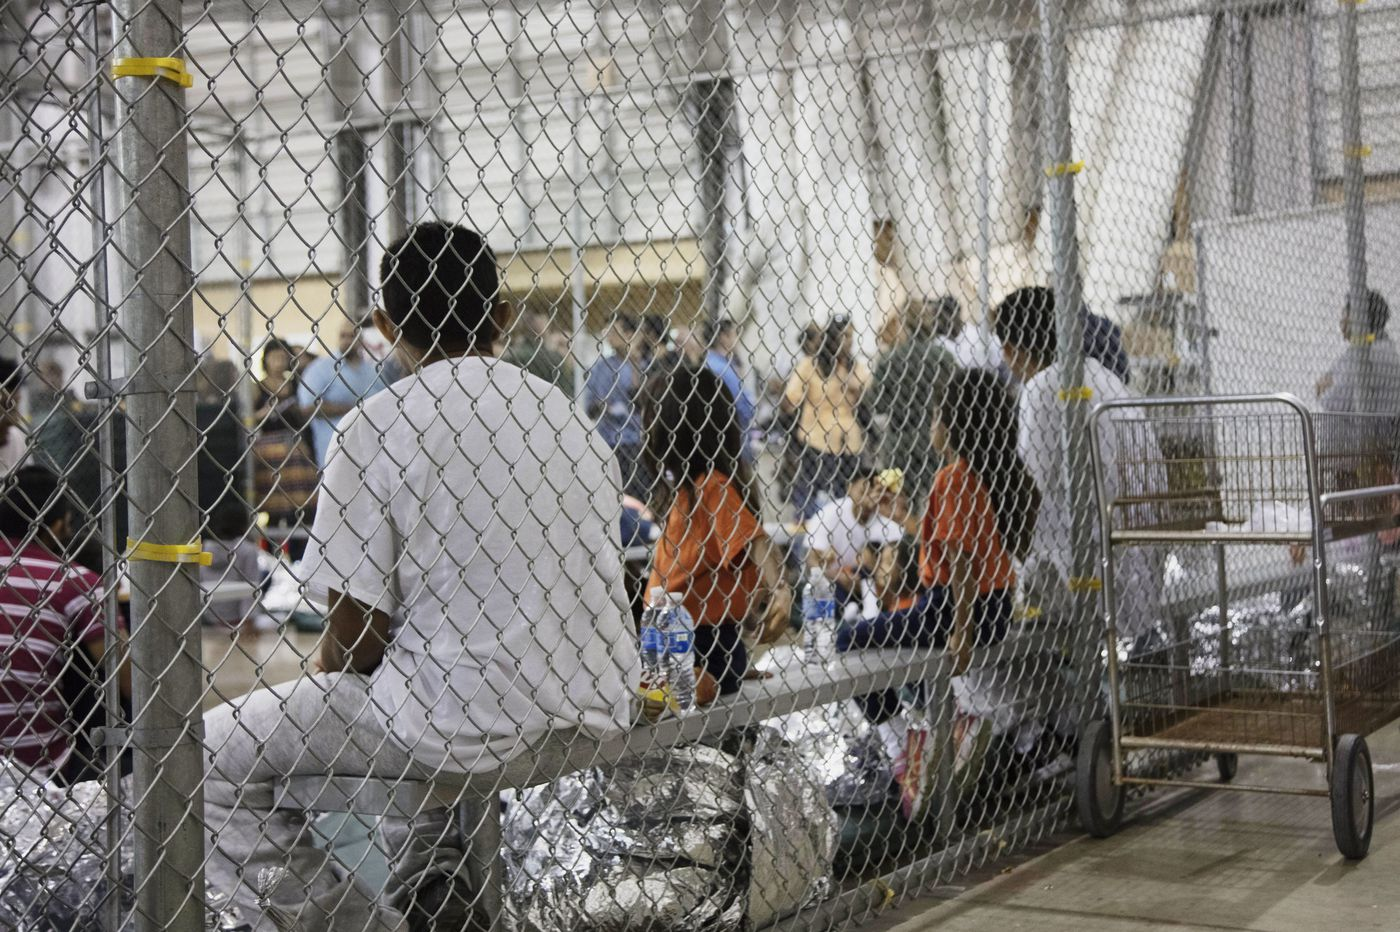 What can children in cages teach us?